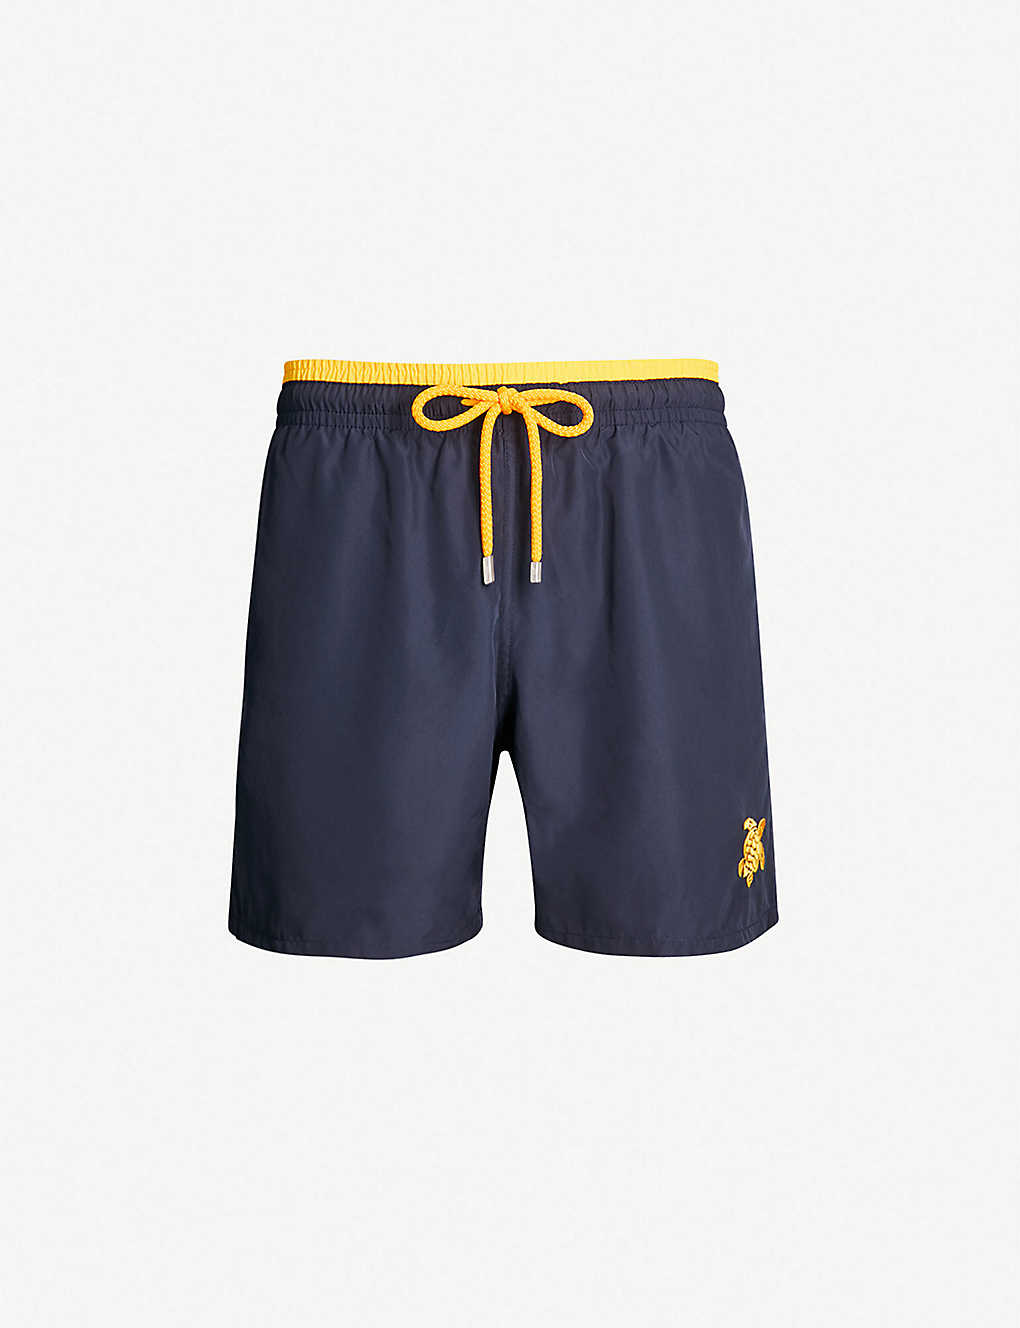 a47816ab6bc VILEBREQUIN - Moka colour-blocked swim shorts | Selfridges.com